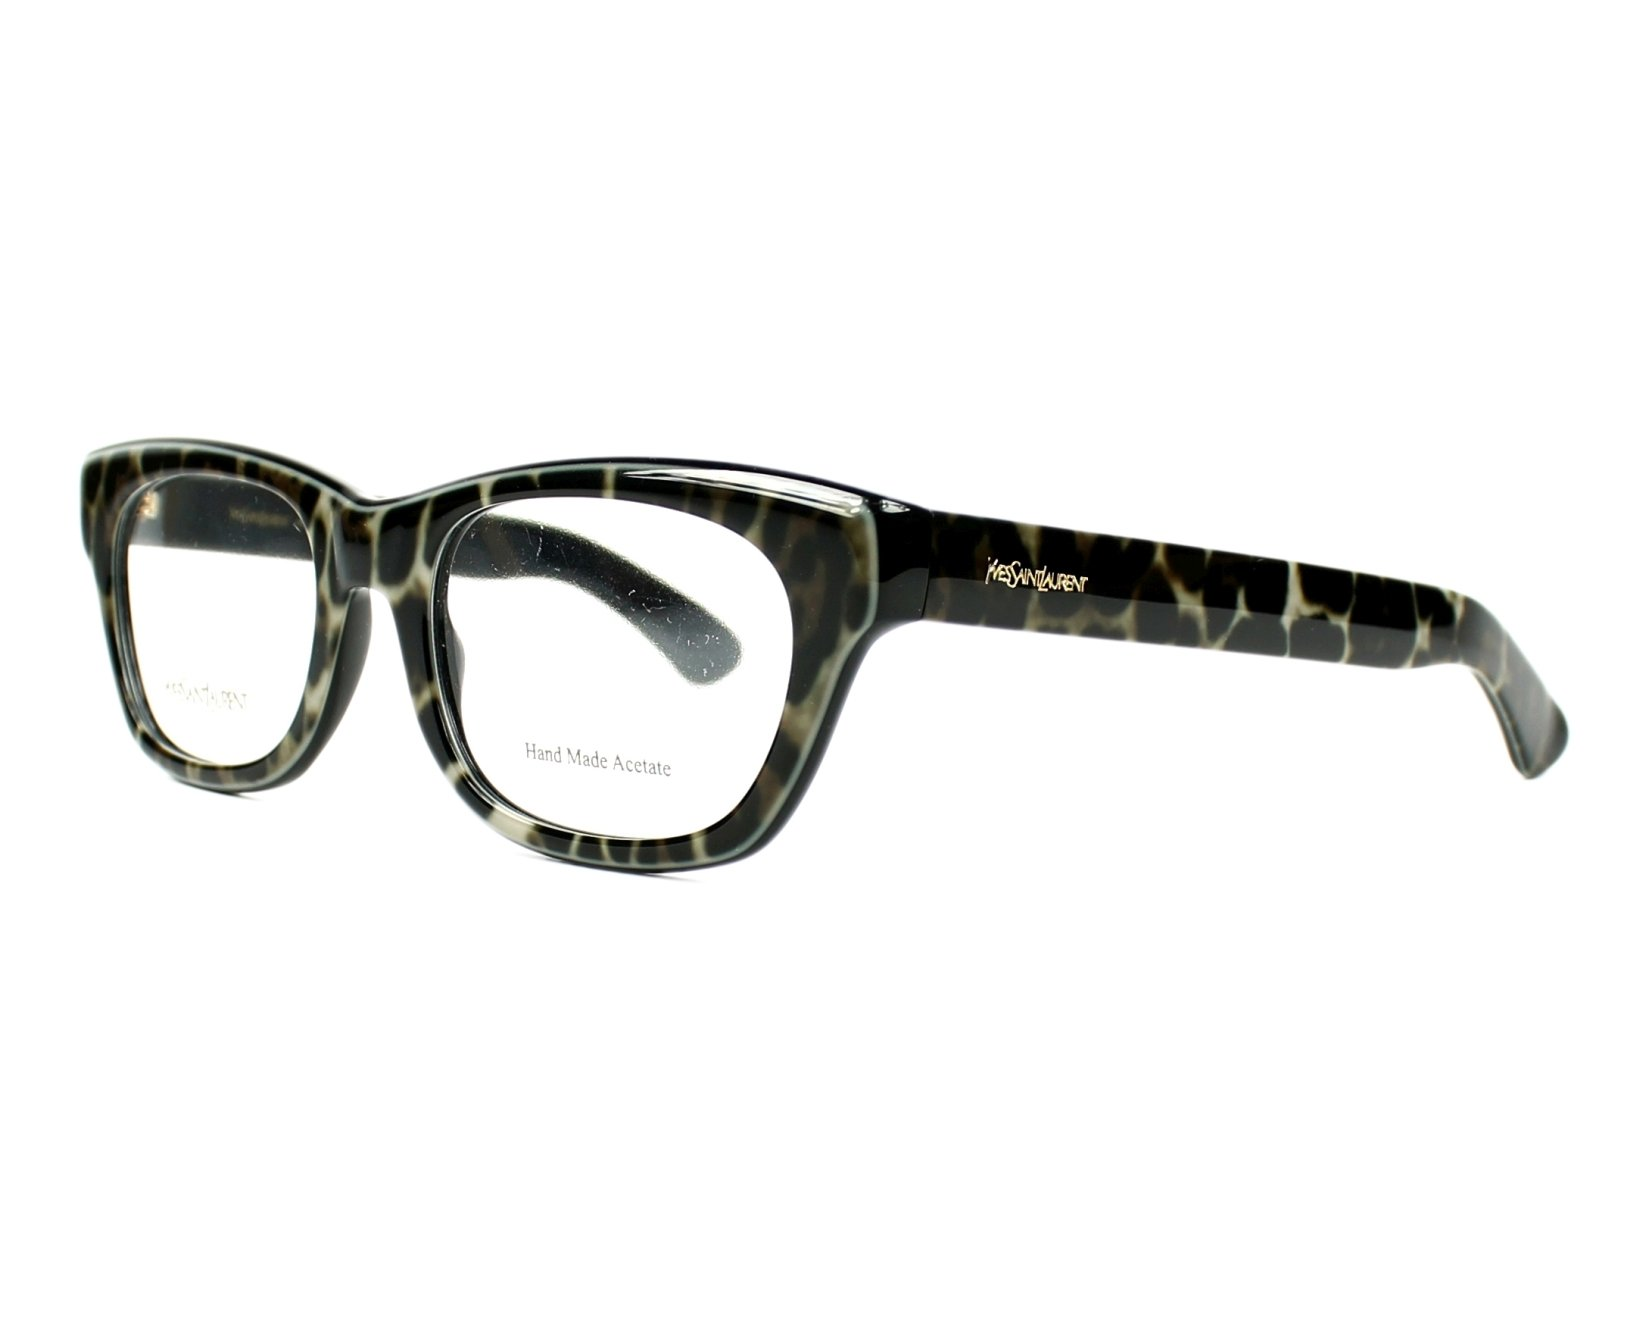 lunettes de vue yves saint laurent ysl 2321 yxo noir monture mixte. Black Bedroom Furniture Sets. Home Design Ideas